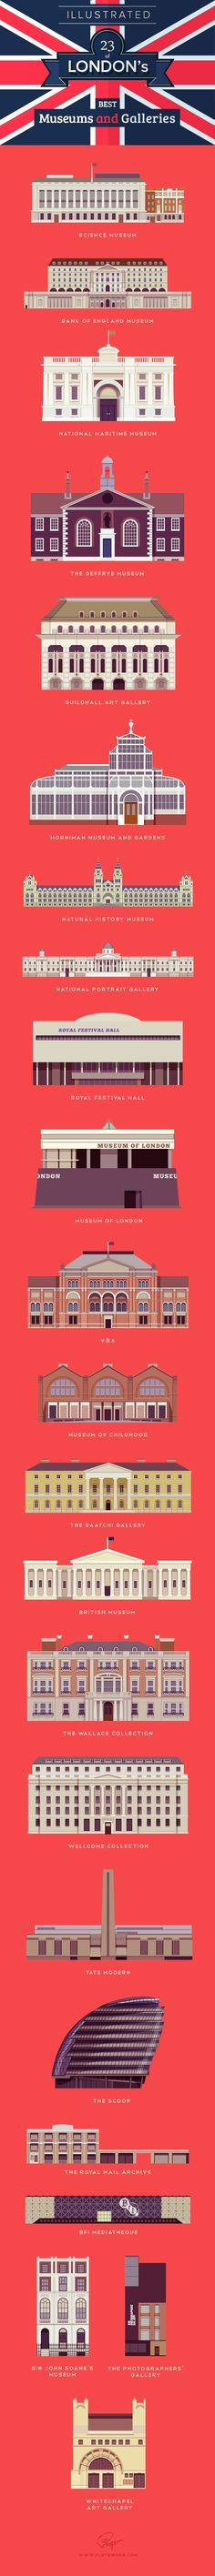 London museums and galleries - infographic elements by Csaba Gyulai, via Behance